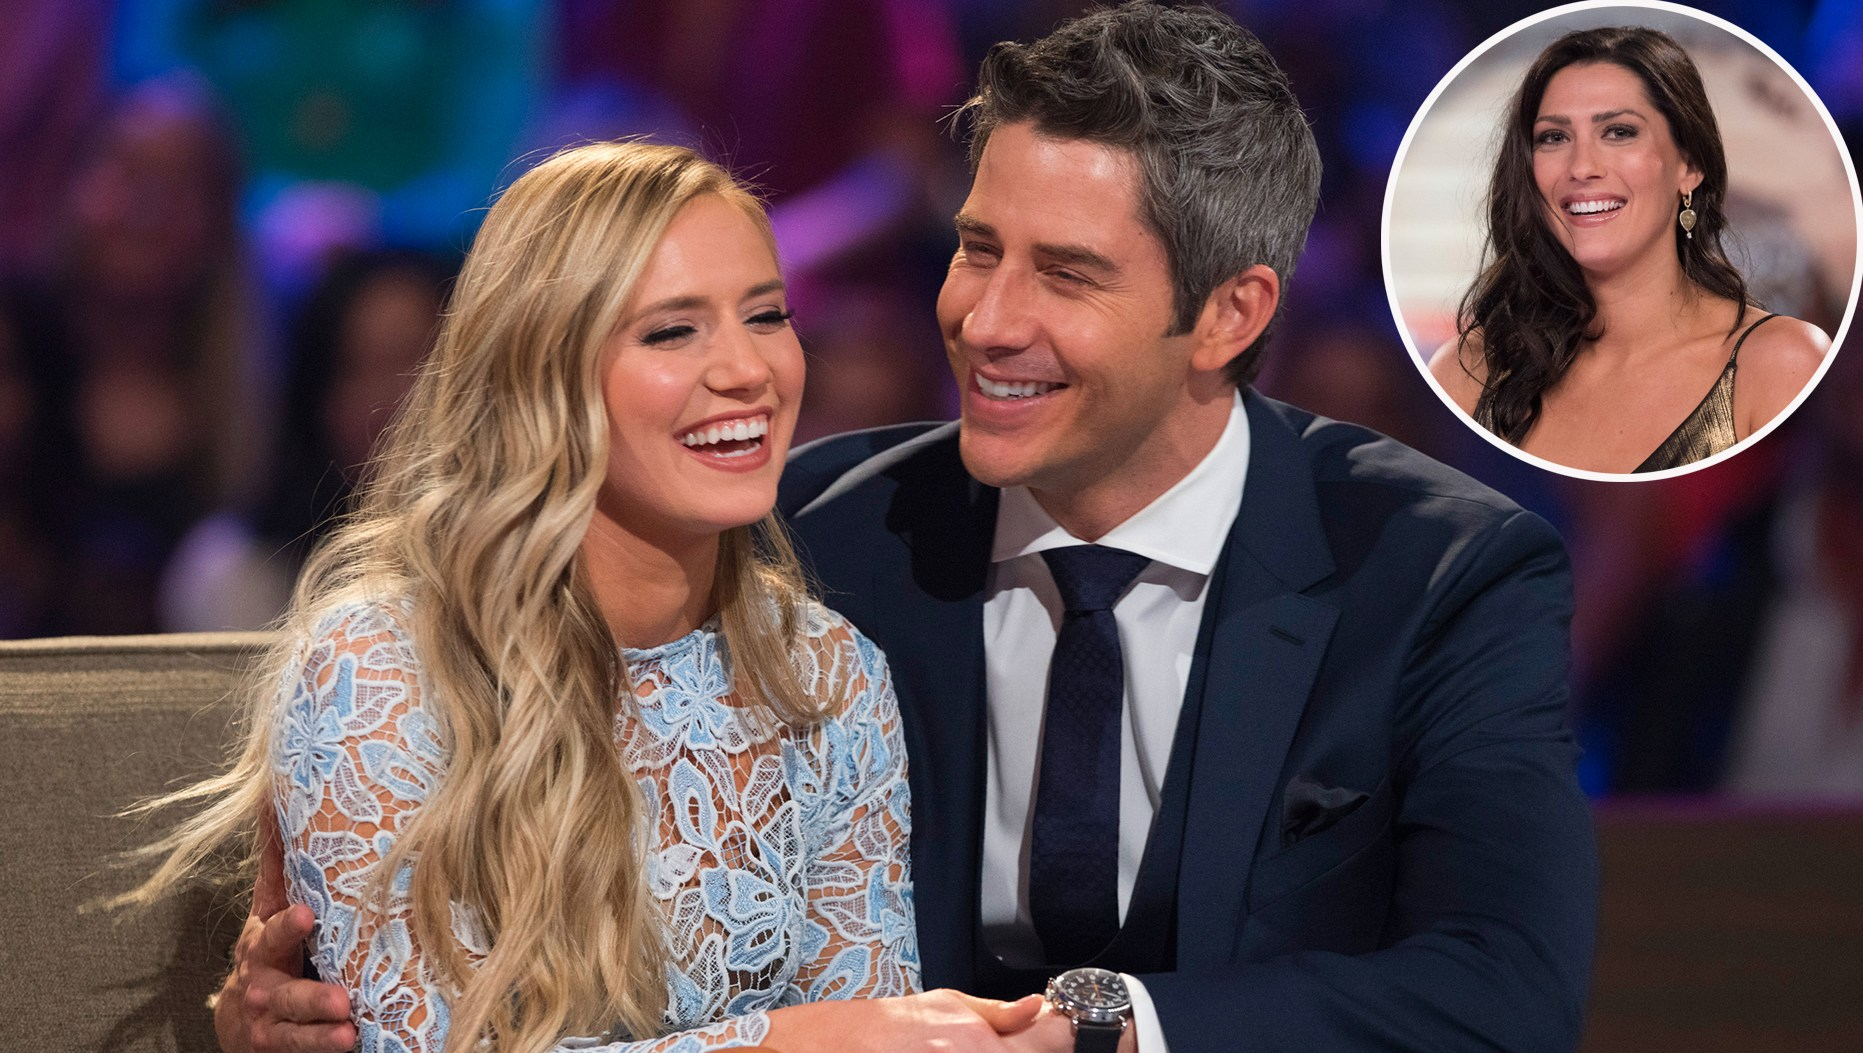 Arie Luyendyk Jr. and Lauren Burnham with Becca Kurfrin